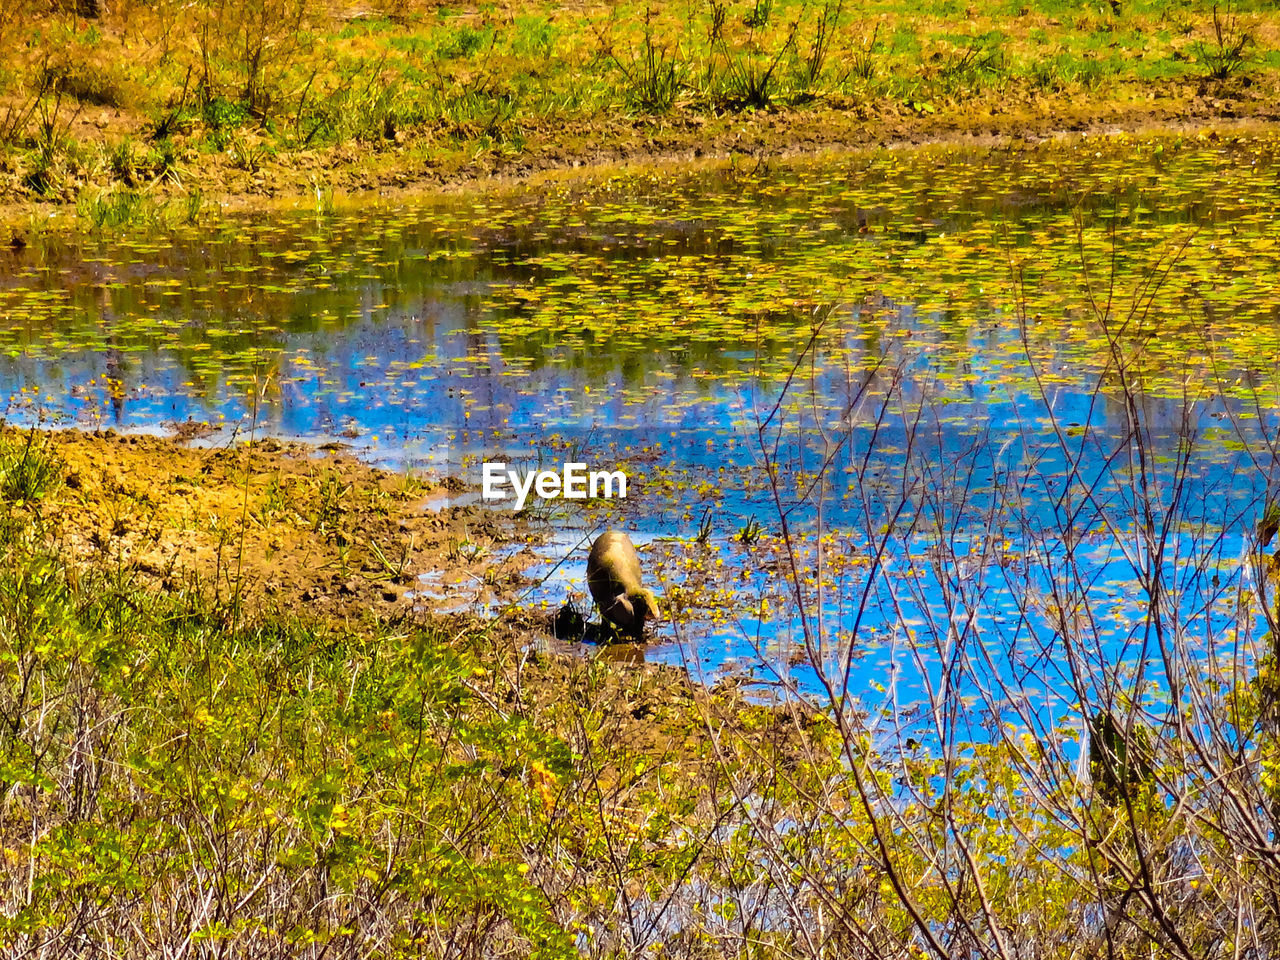 lake, animal themes, one animal, animals in the wild, nature, water, reflection, animal wildlife, day, water bird, tree, bird, grass, outdoors, growth, no people, plant, swimming, beauty in nature, black swan